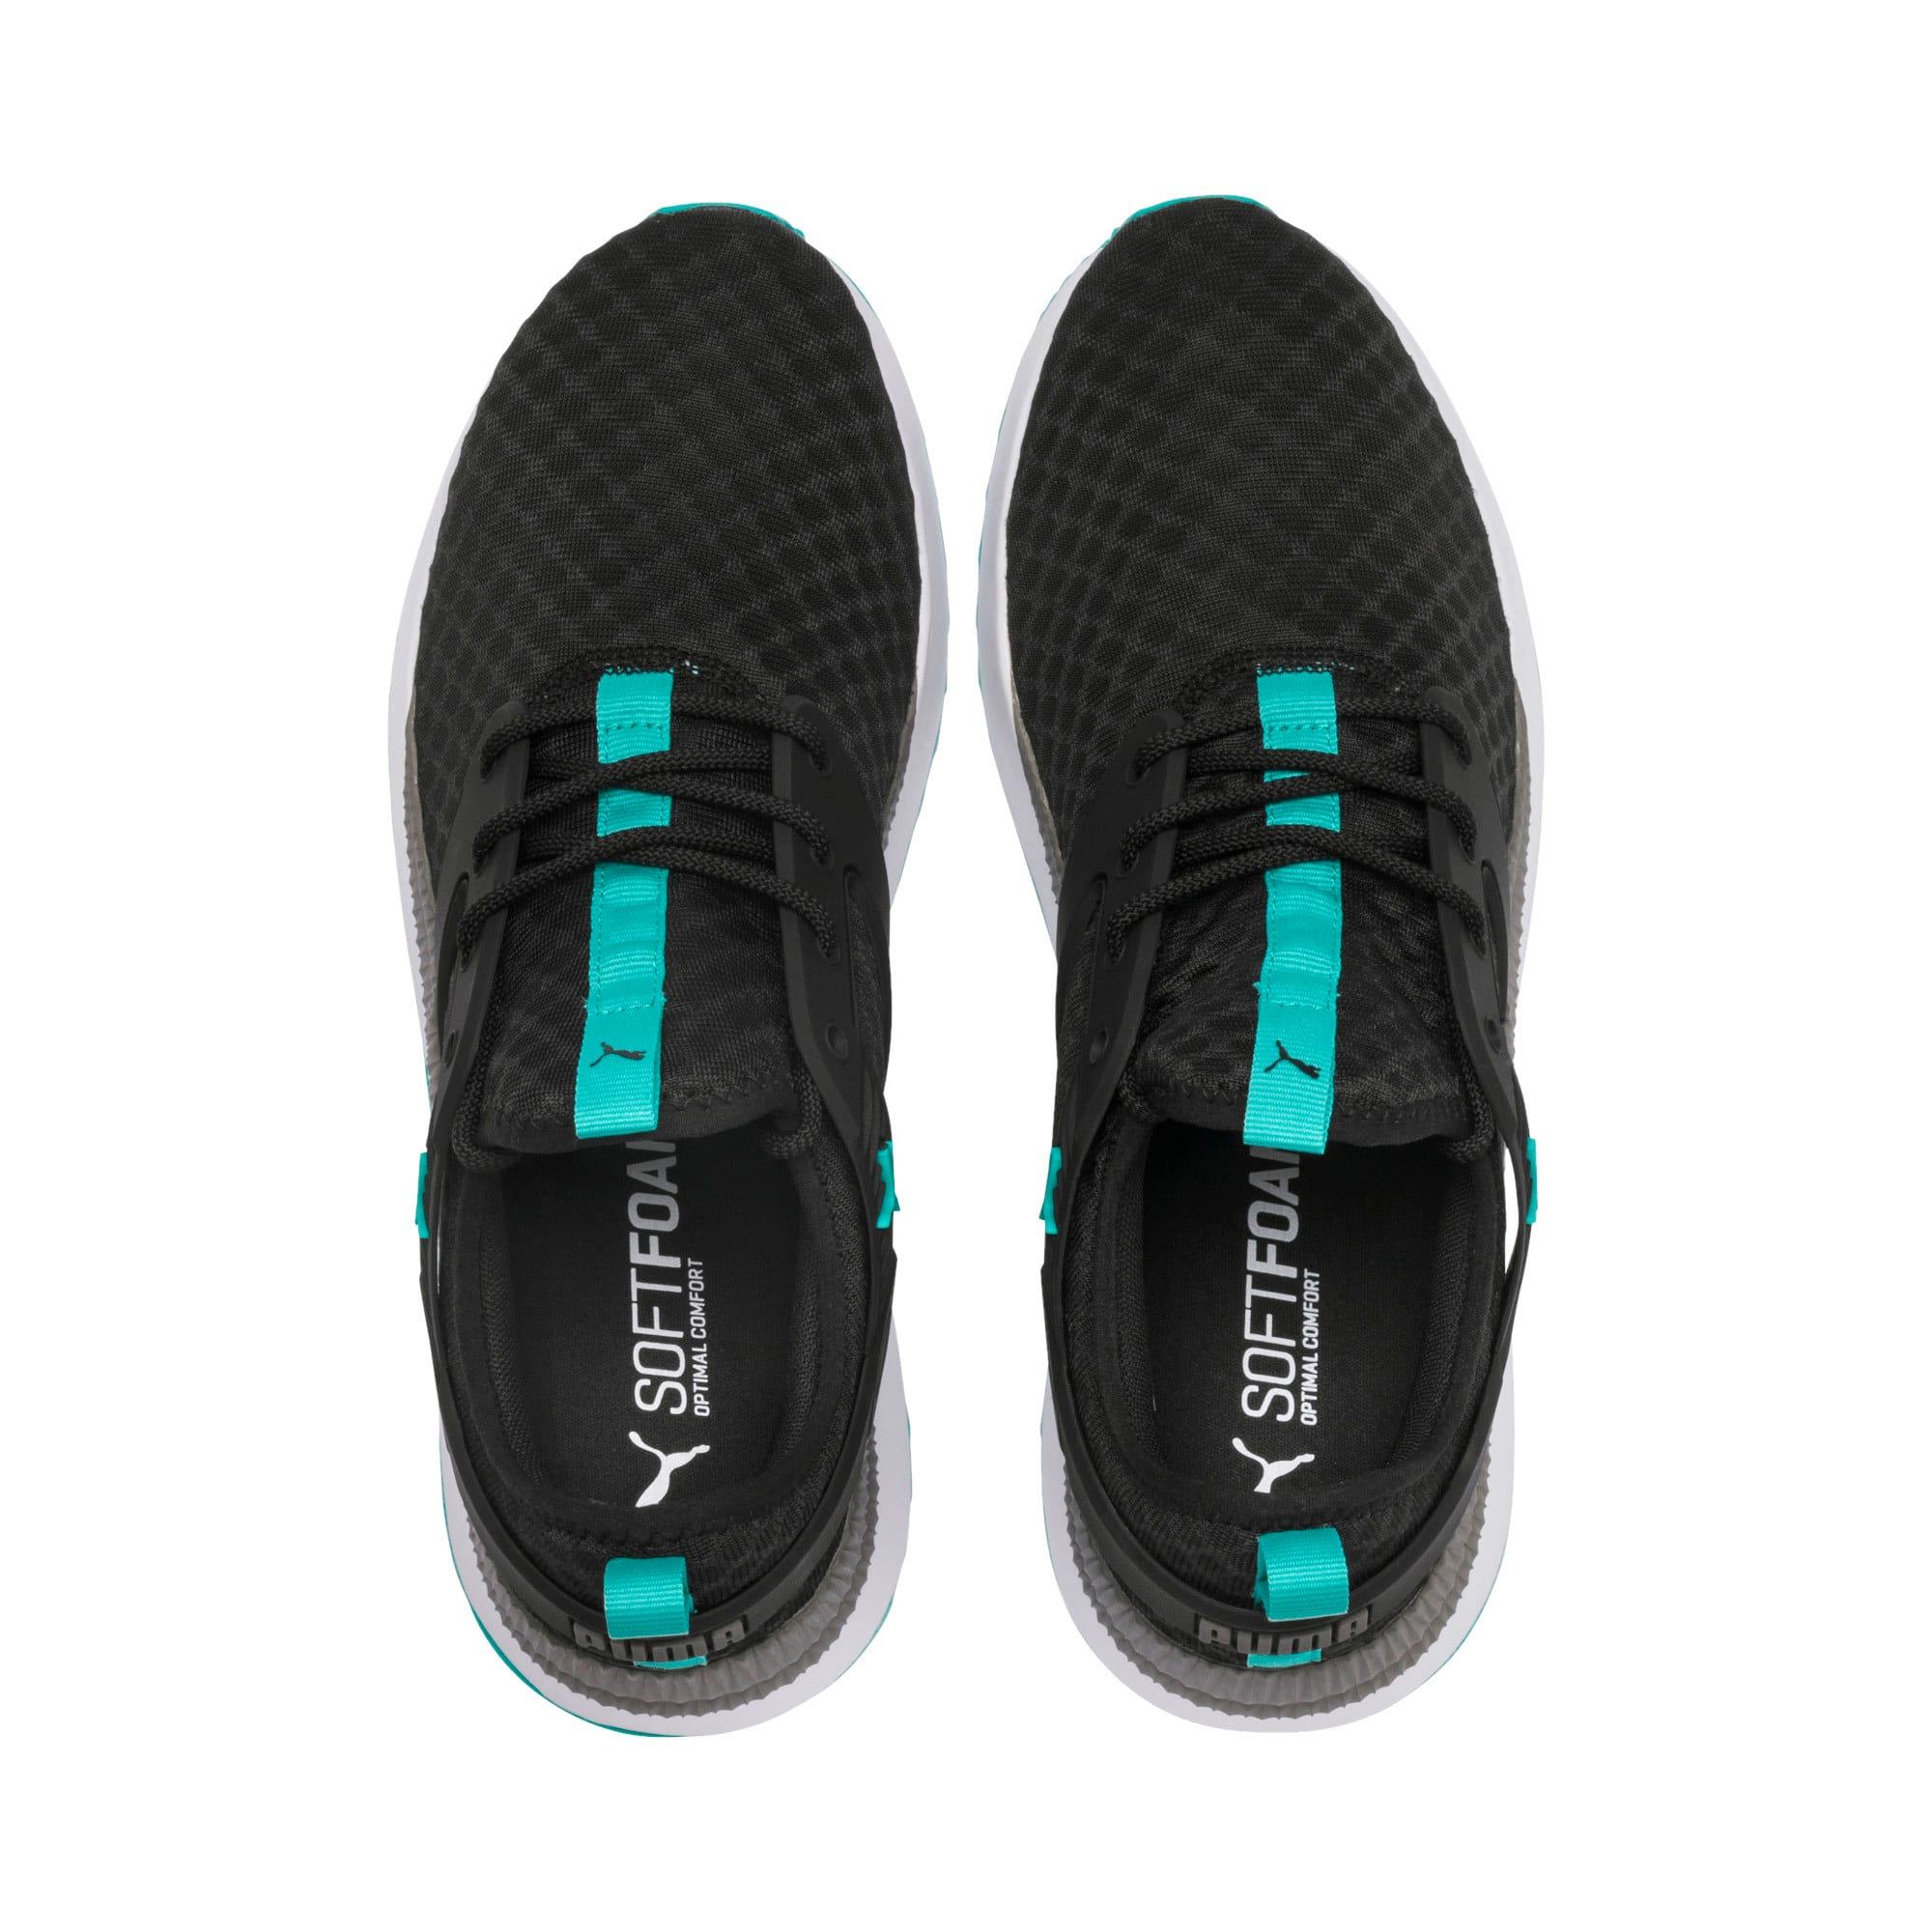 Thumbnail 7 of Pacer Next Excel Running Shoes, Puma Black-Blue Turquoise, medium